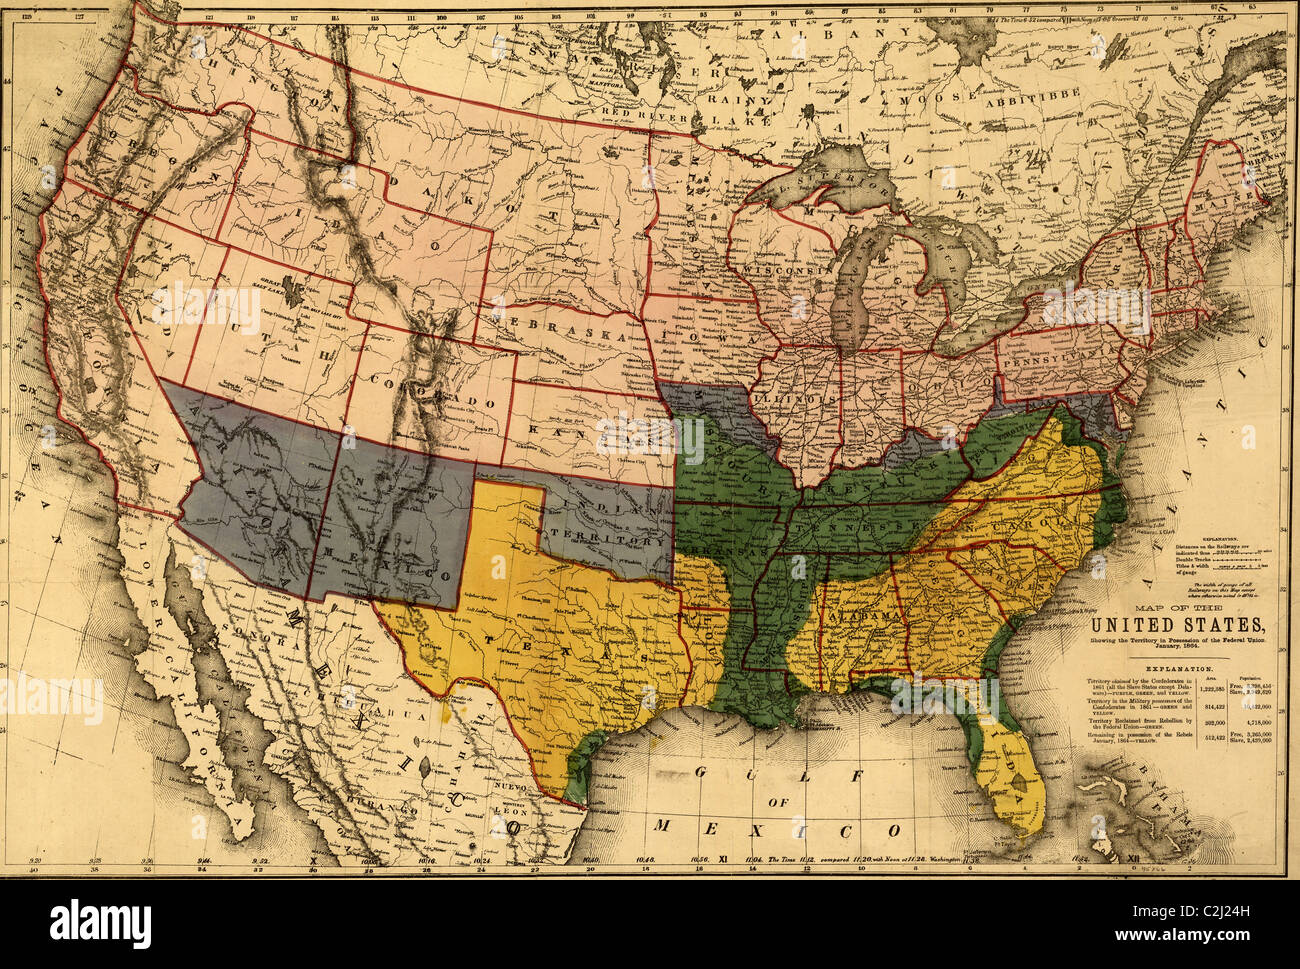 US territory in possession of the Federal Union, January, 1864. - Stock Image